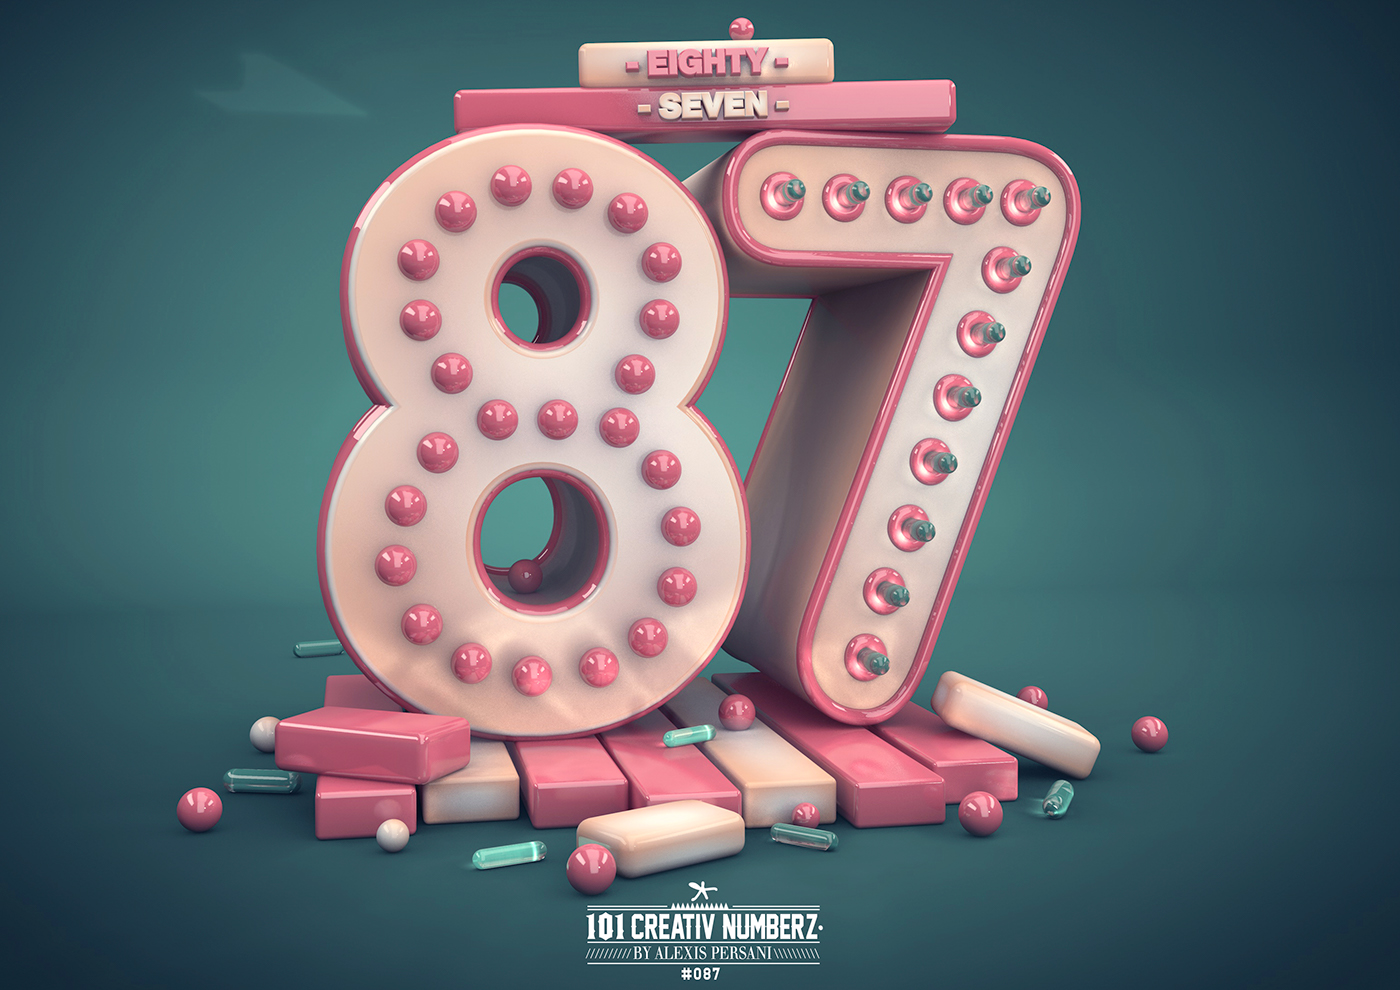 Outstanding 101 Creative Numbers Typography by Alexis Persani 81